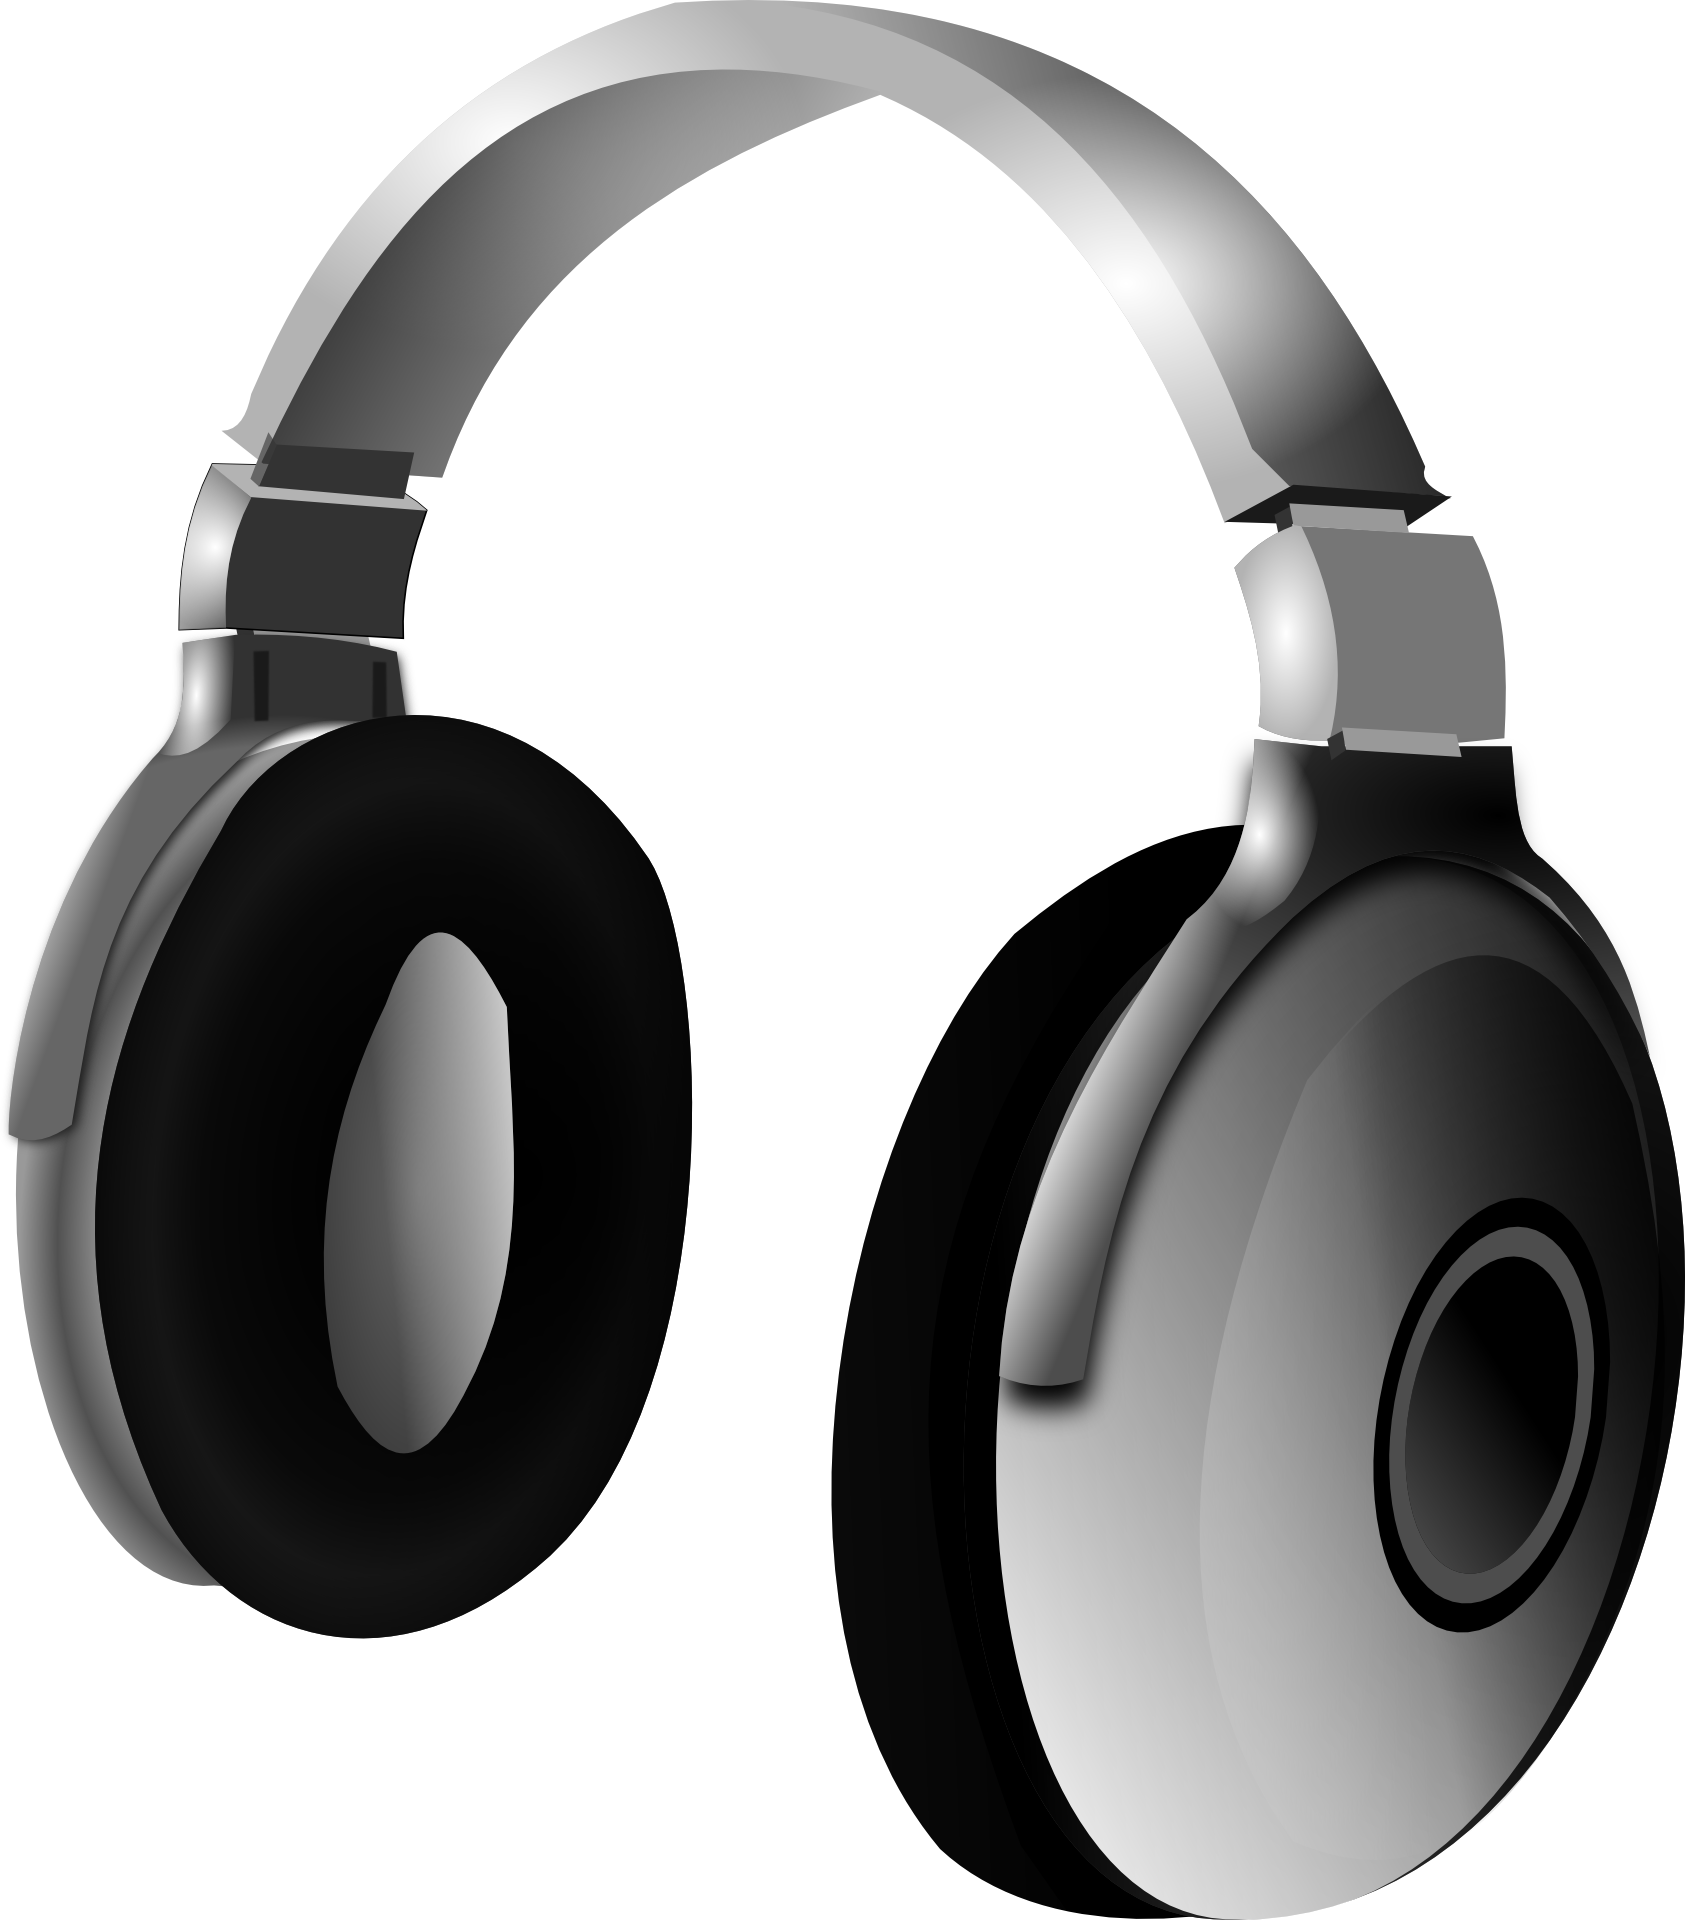 Headphone photo. Source: OpenClipart-Vectors/Pixabay. Creative Commons 0.   https://pixabay.com/en/headphone-headset-music-audio-159569/